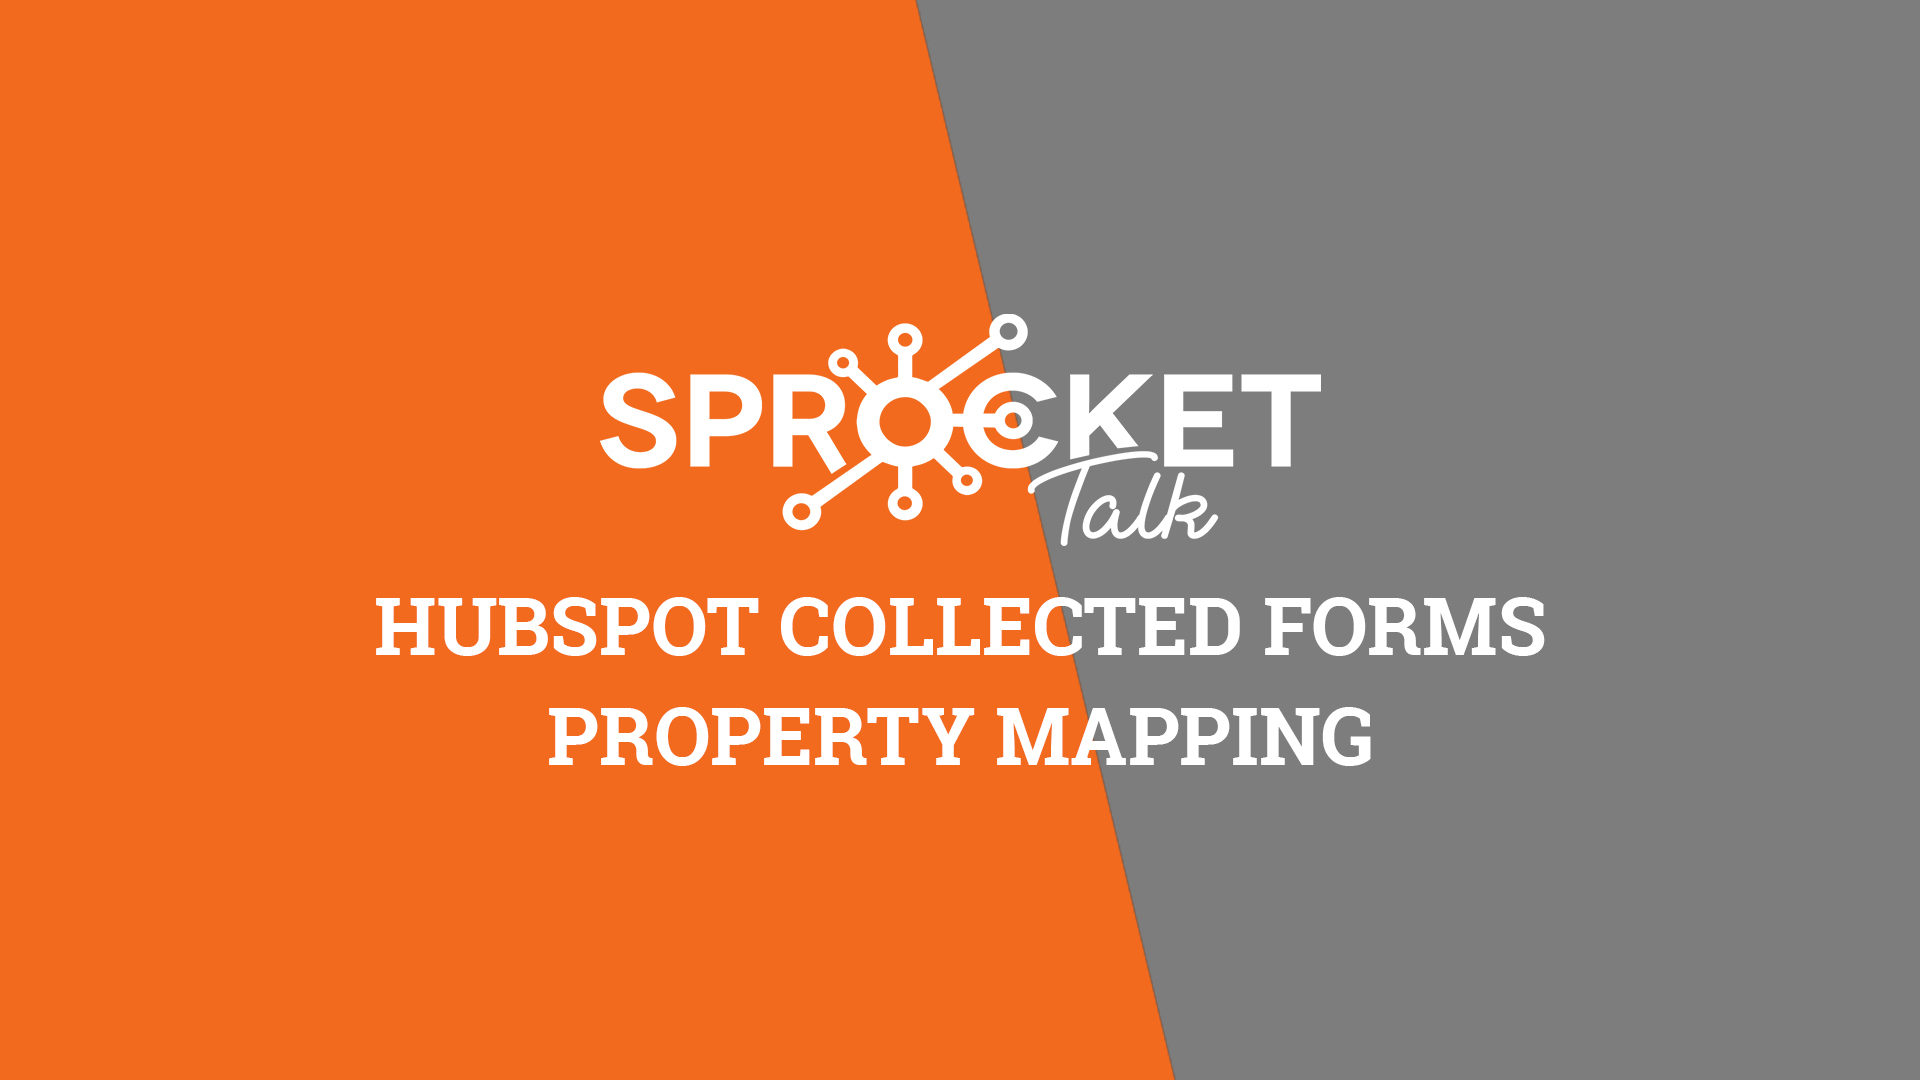 HubSpot Collected Forms Property Mapping